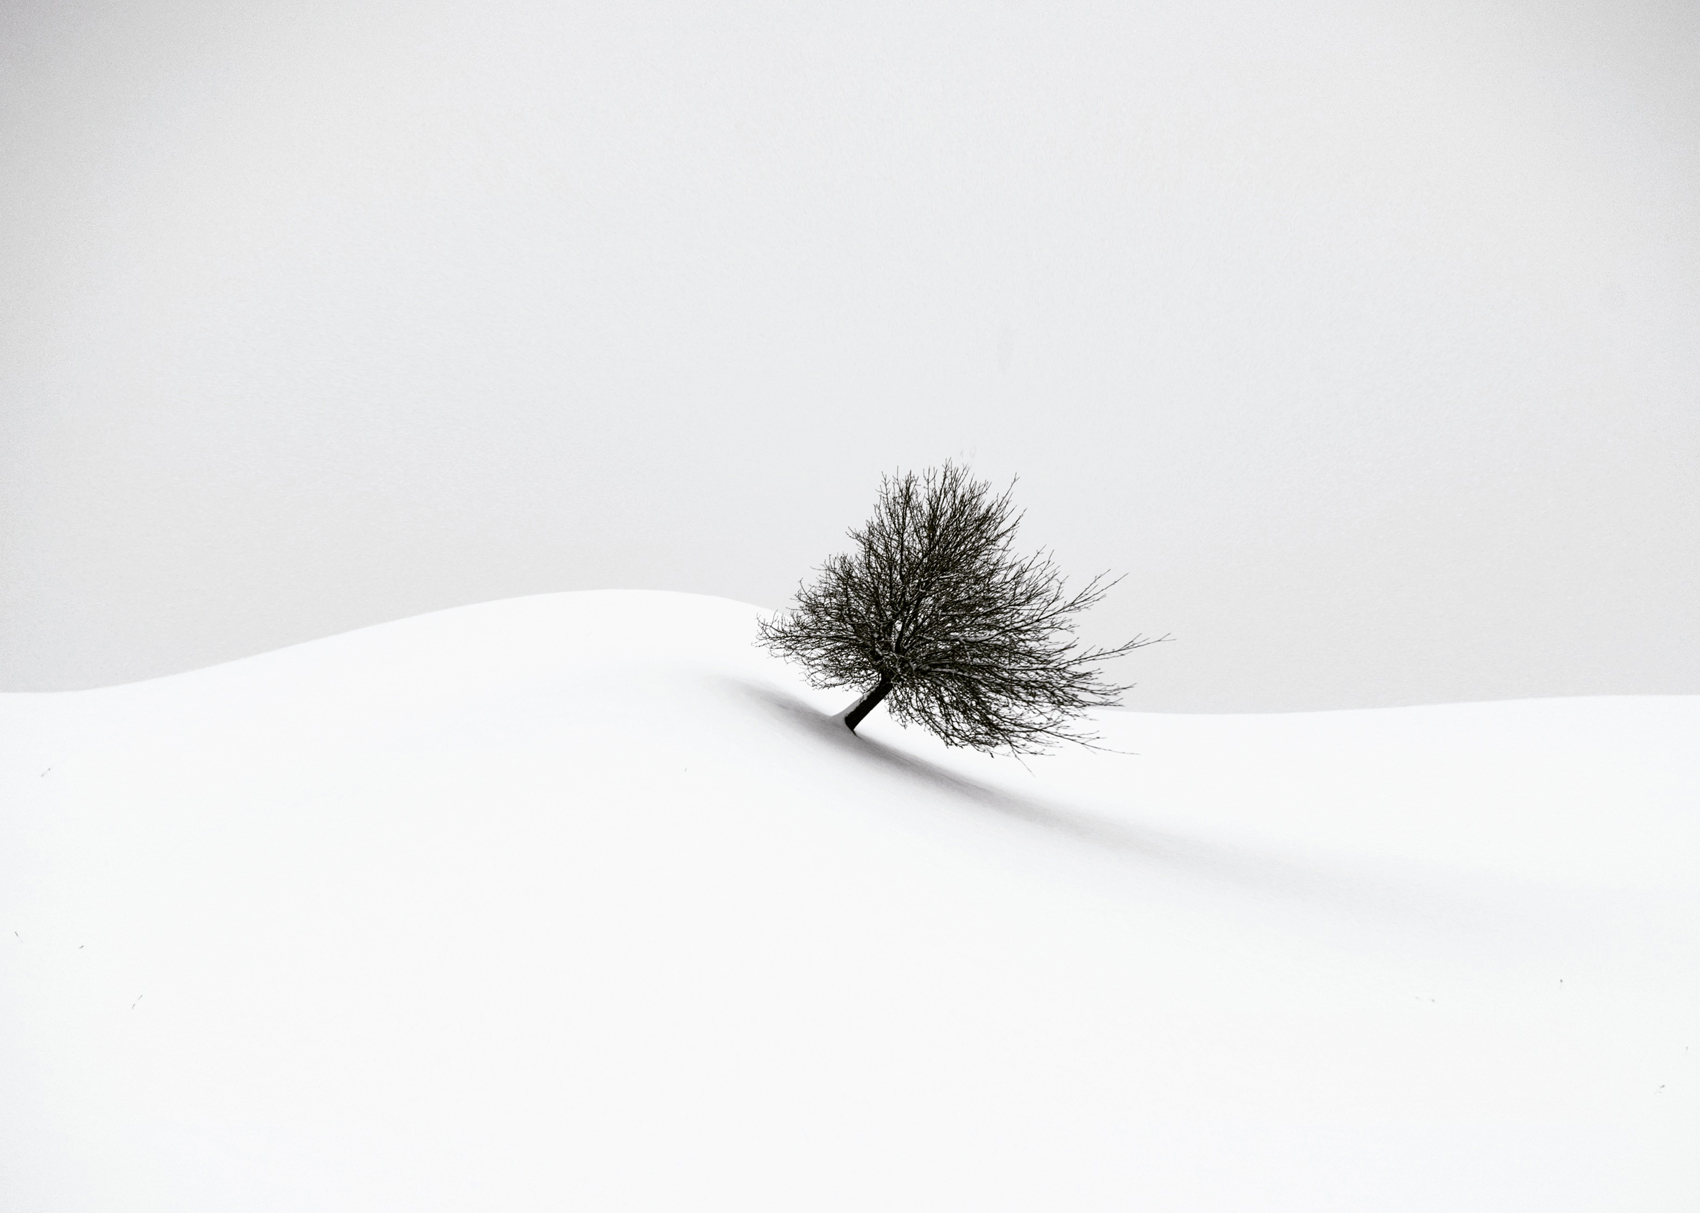 fine art black and white landscape photograph of a lonely tree in Switzerland